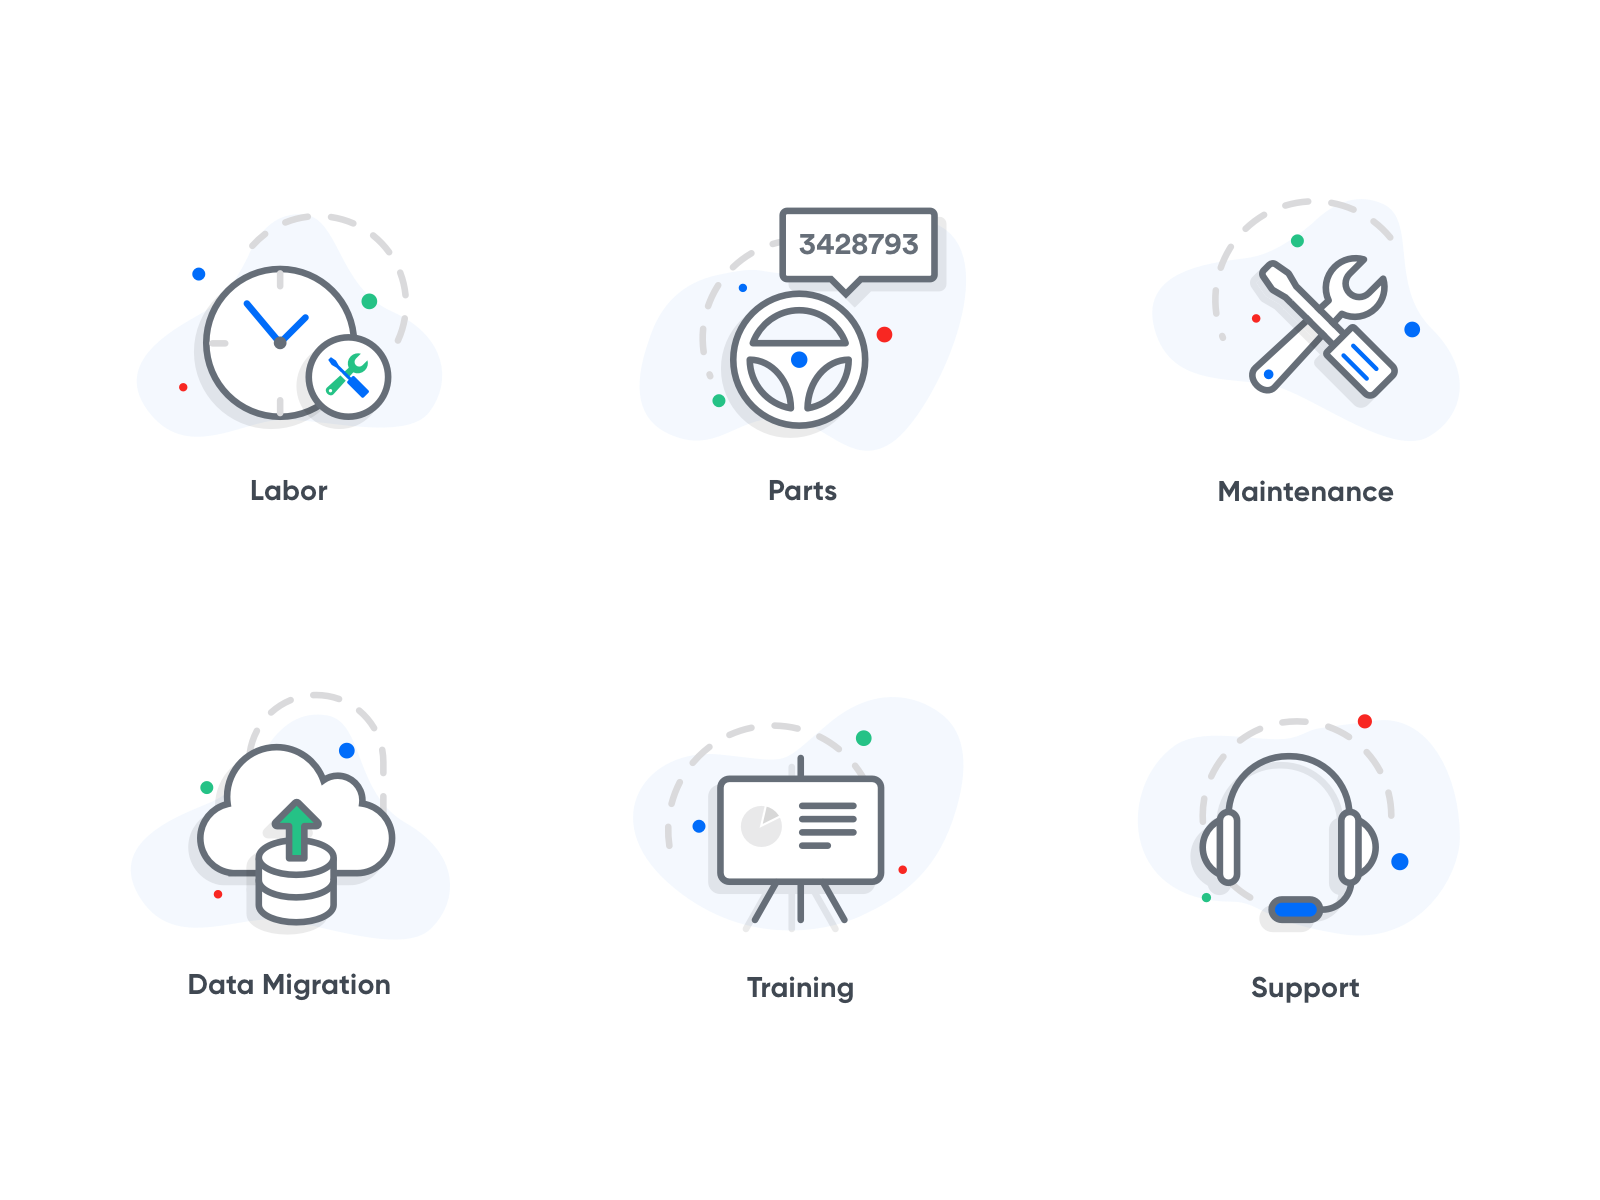 Features icons by iftikhar shaikh